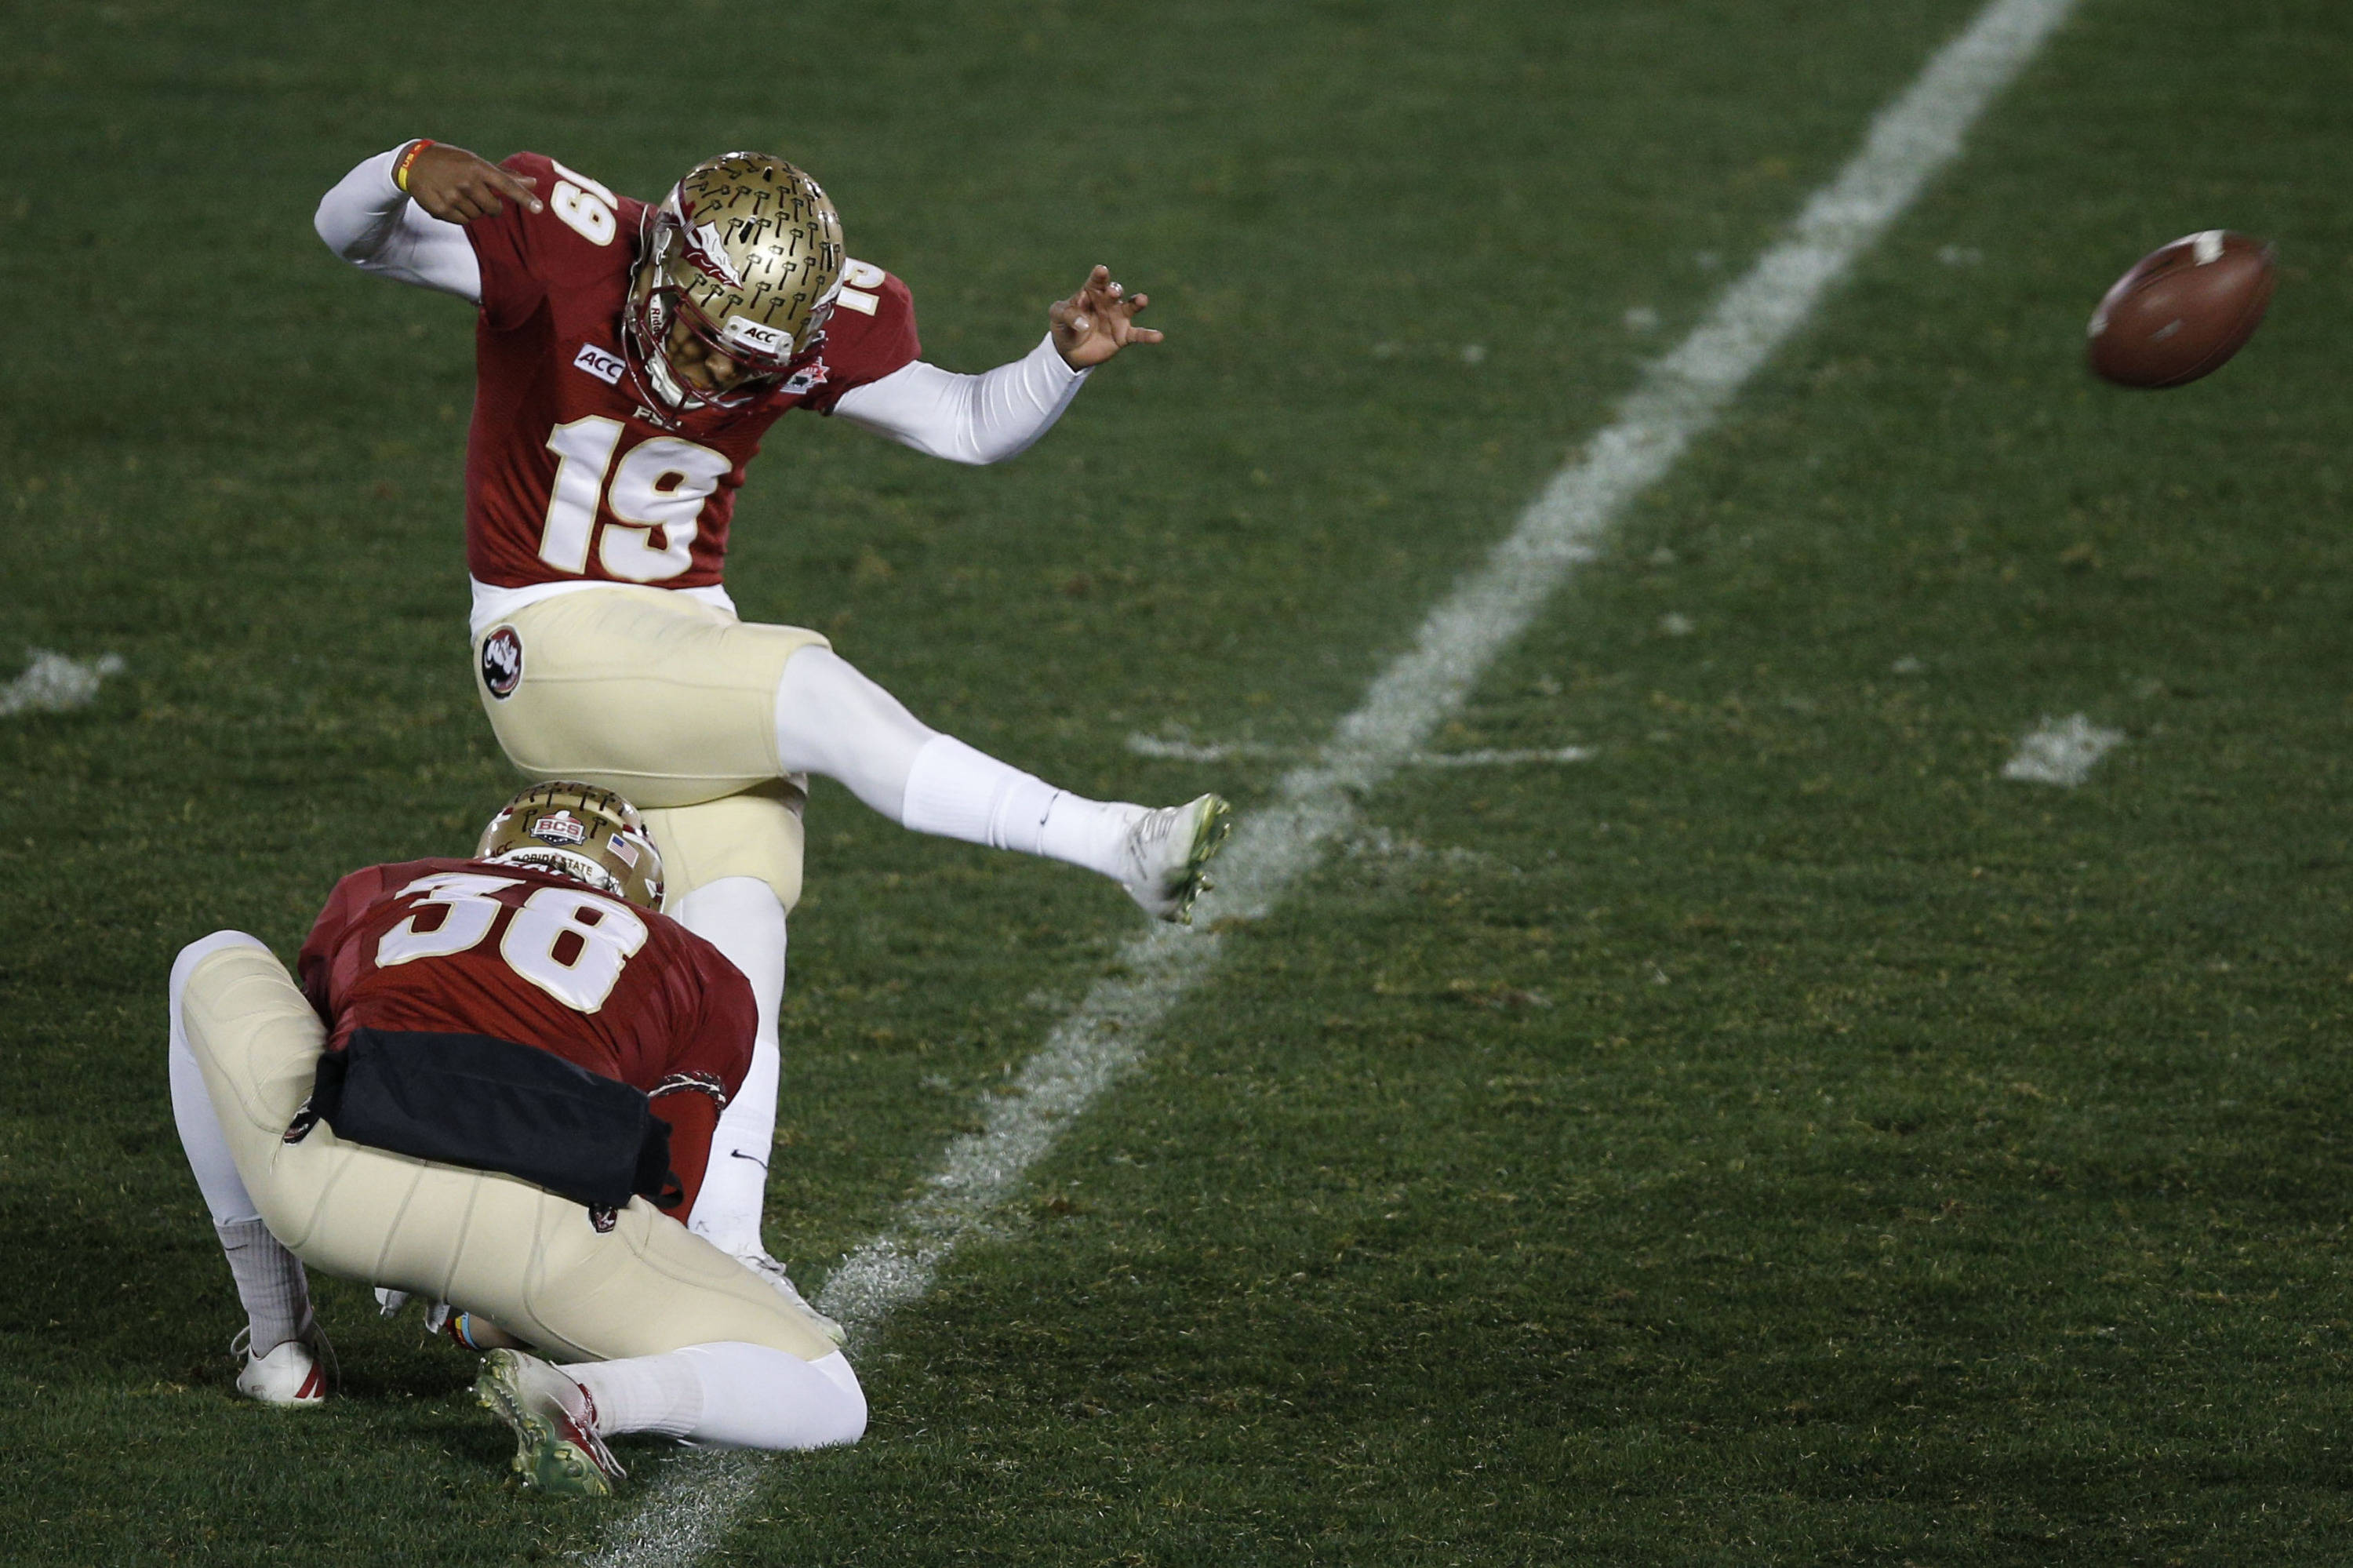 Jan 6, 2014; Pasadena, CA, USA; Florida State Seminoles kicker Roberto Aguayo (19) kicks the ball out of the hold by punter Cason Beatty (38) during the second half of the 2014 BCS National Championship game against the Auburn Tigers at the Rose Bowl.  Mandatory Credit: Kelvin Kuo-USA TODAY Sports